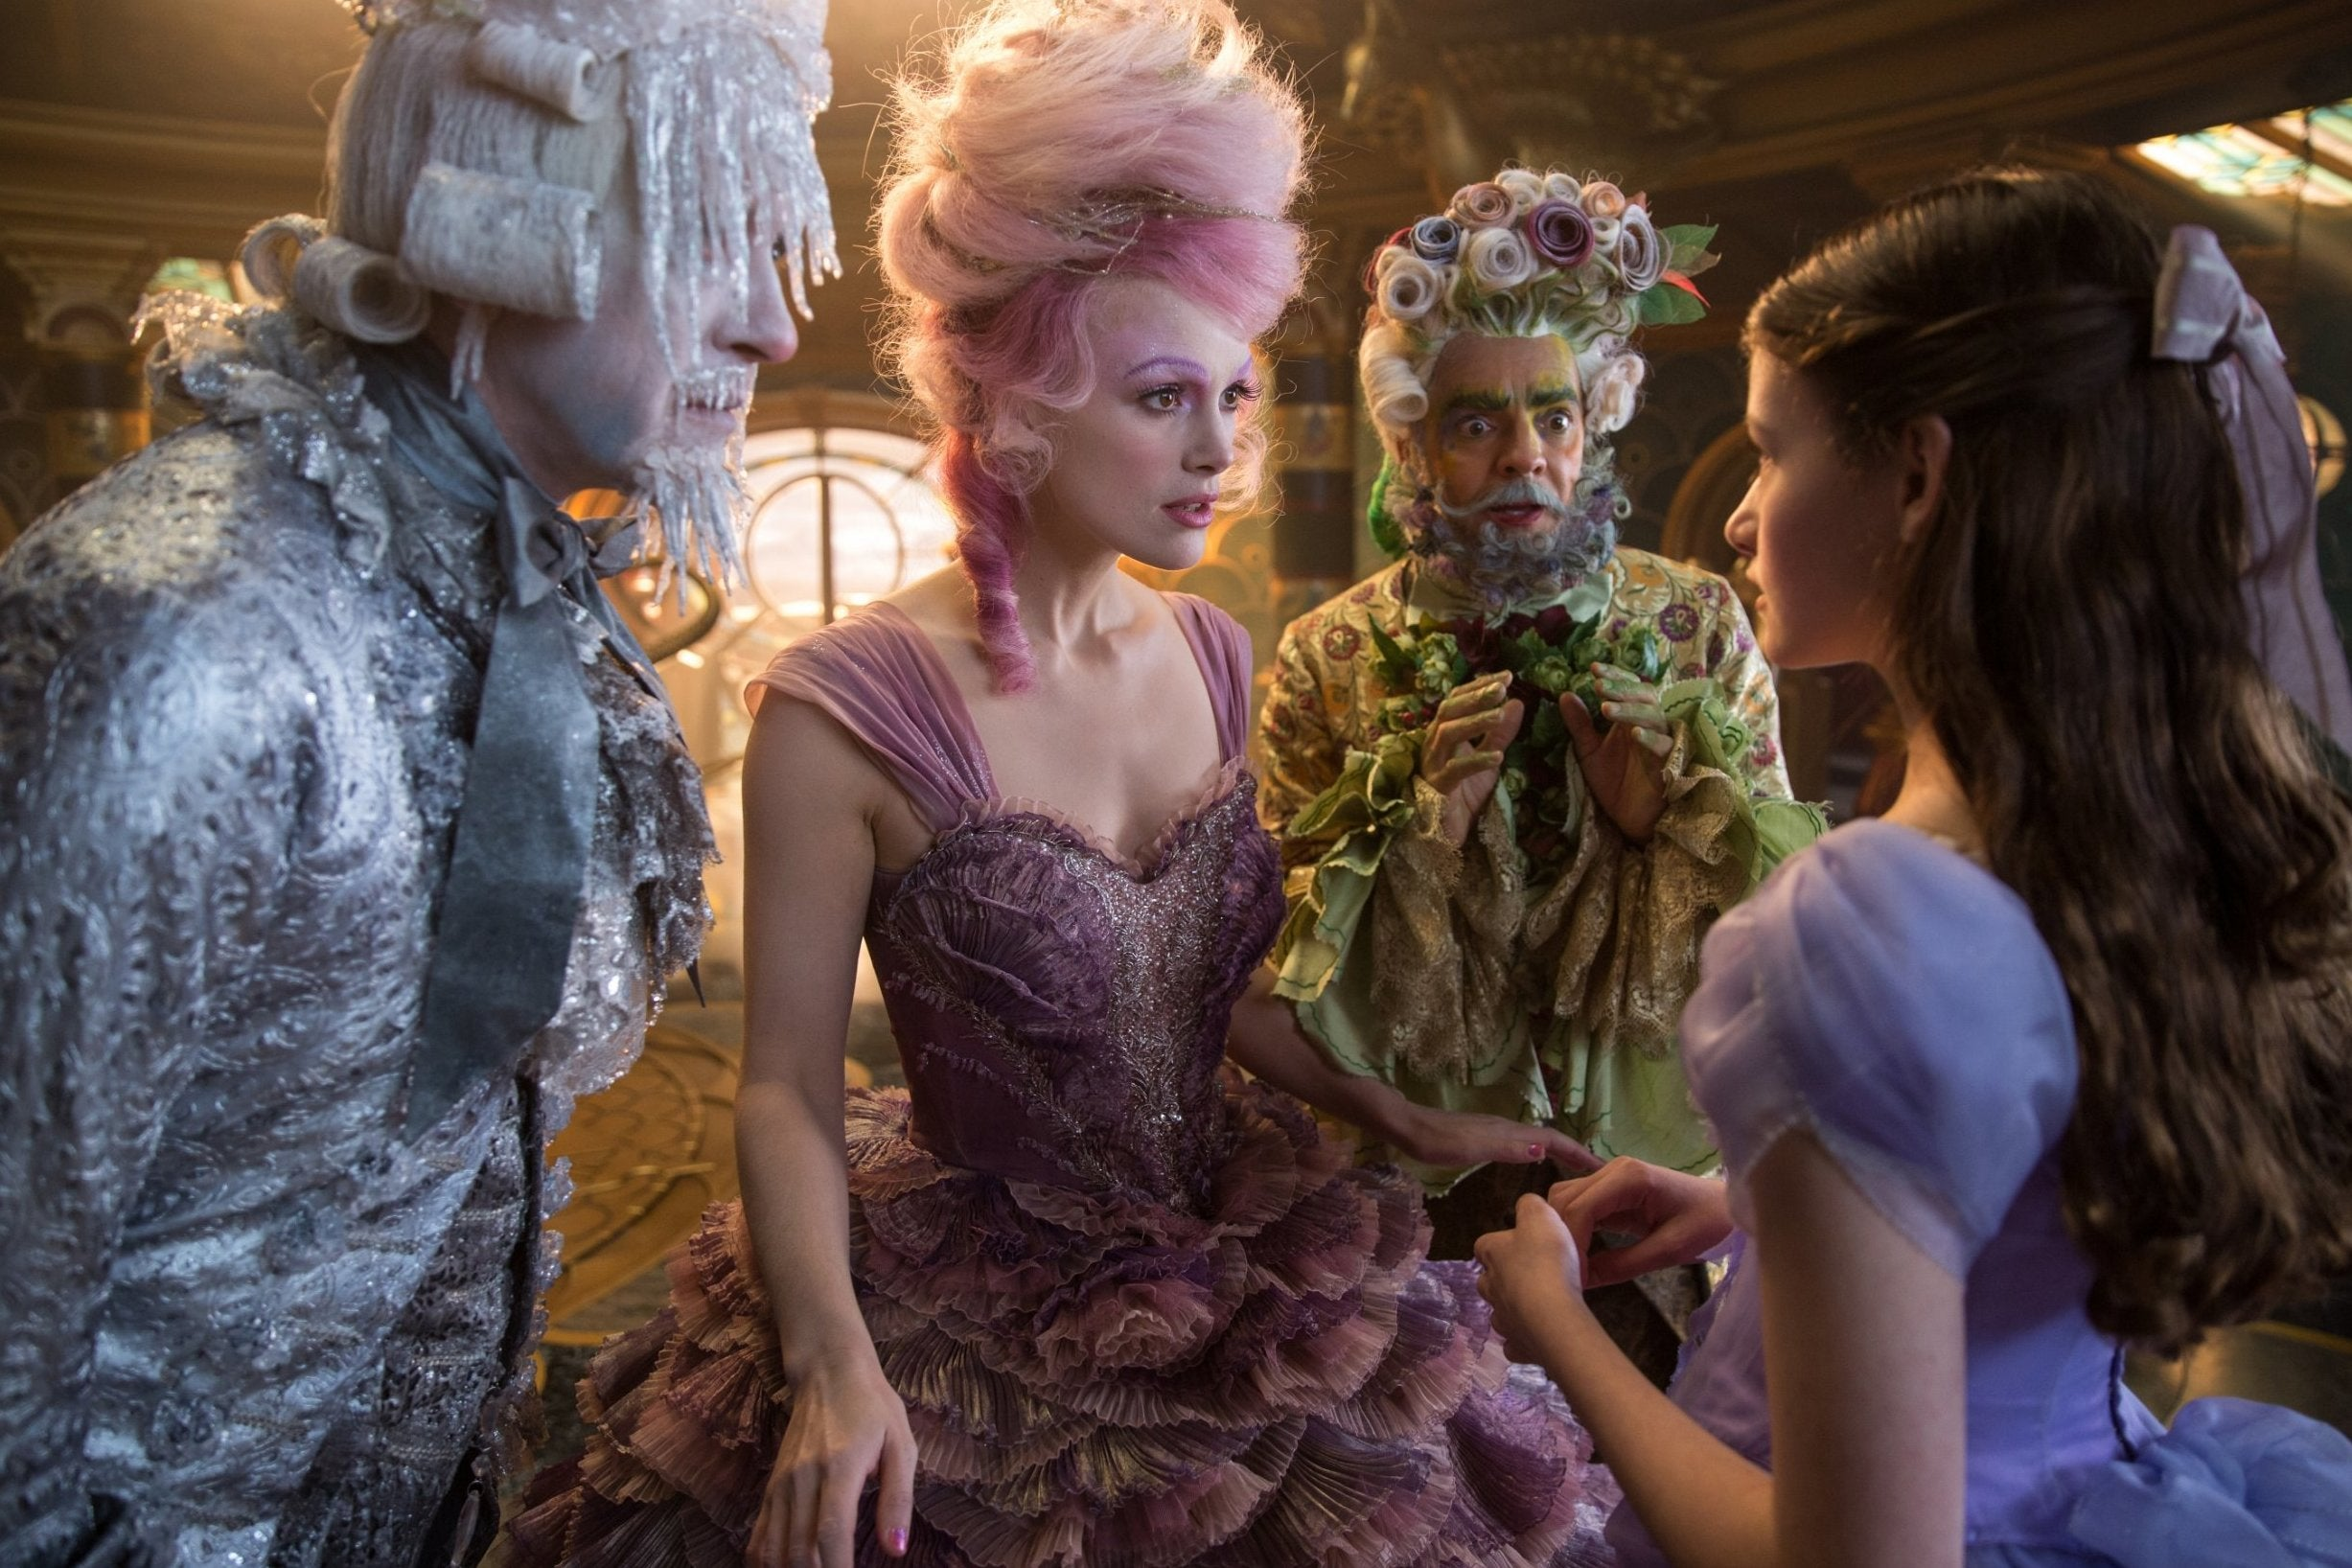 Discover the rich and expansive world of Disney's The Nutcracker and the Four Realms